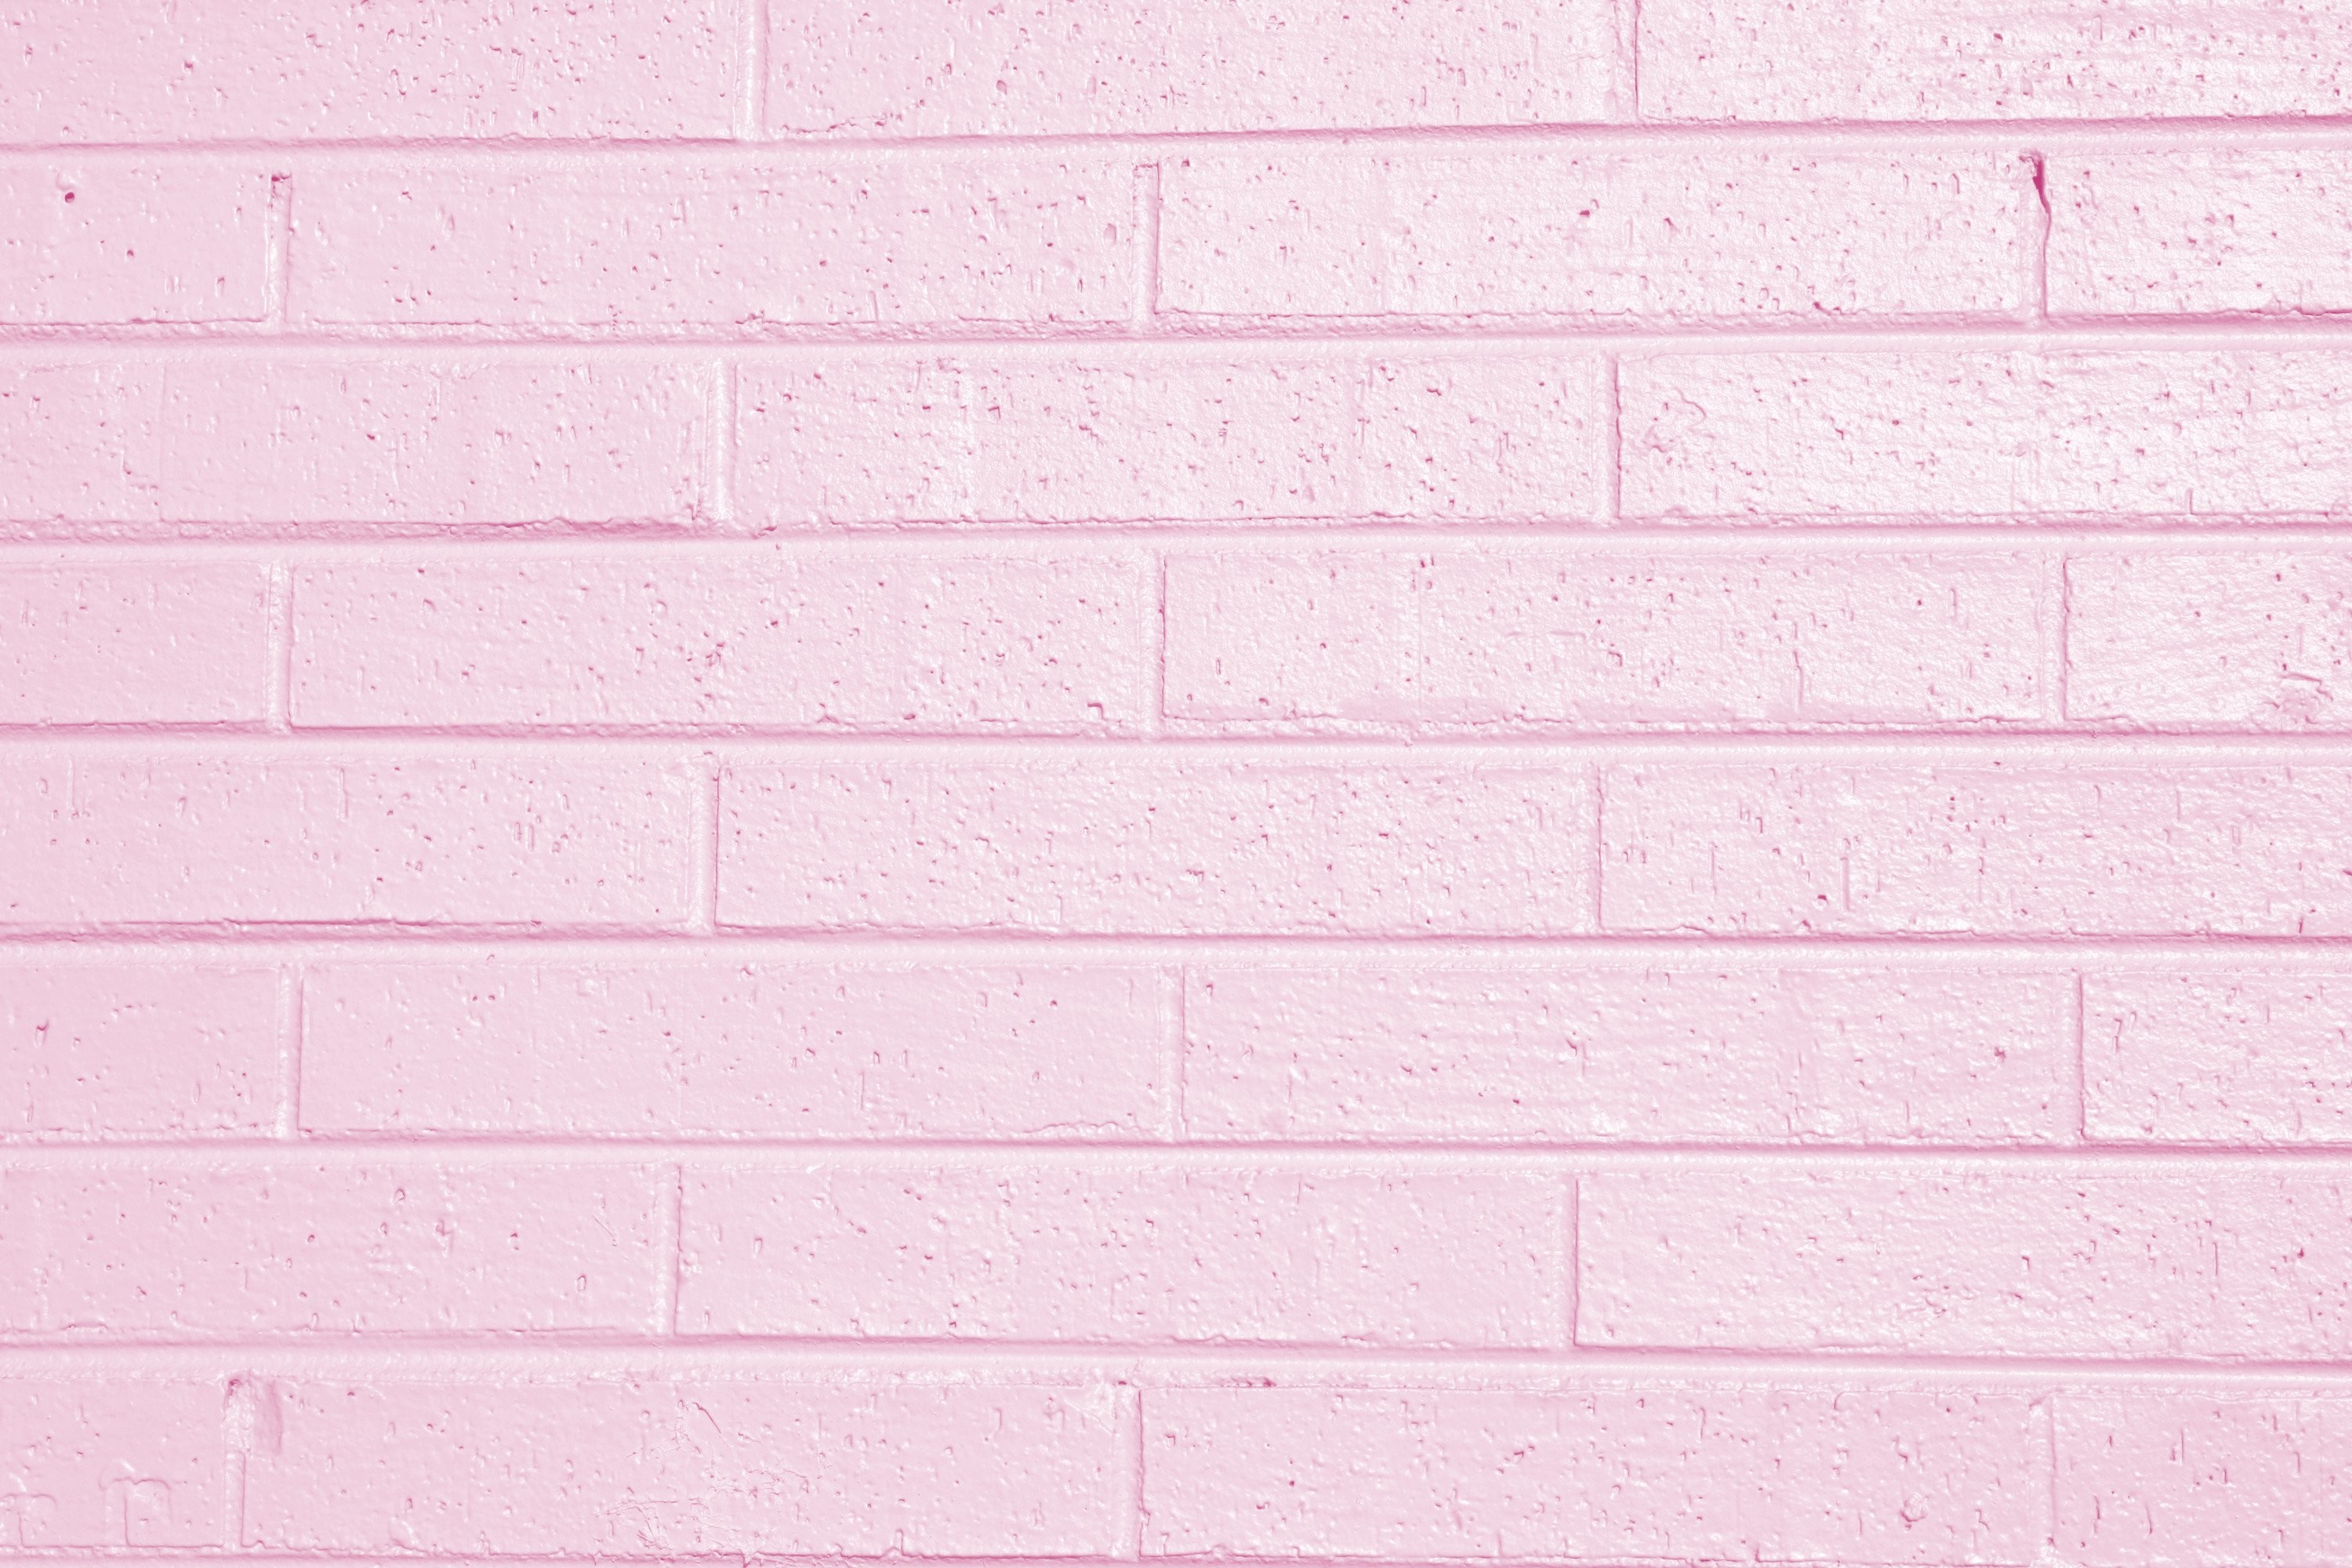 Free High Resolution Photo Of A Brick Wall Painted Light Pink. Great  Desktop Wallpaper Or